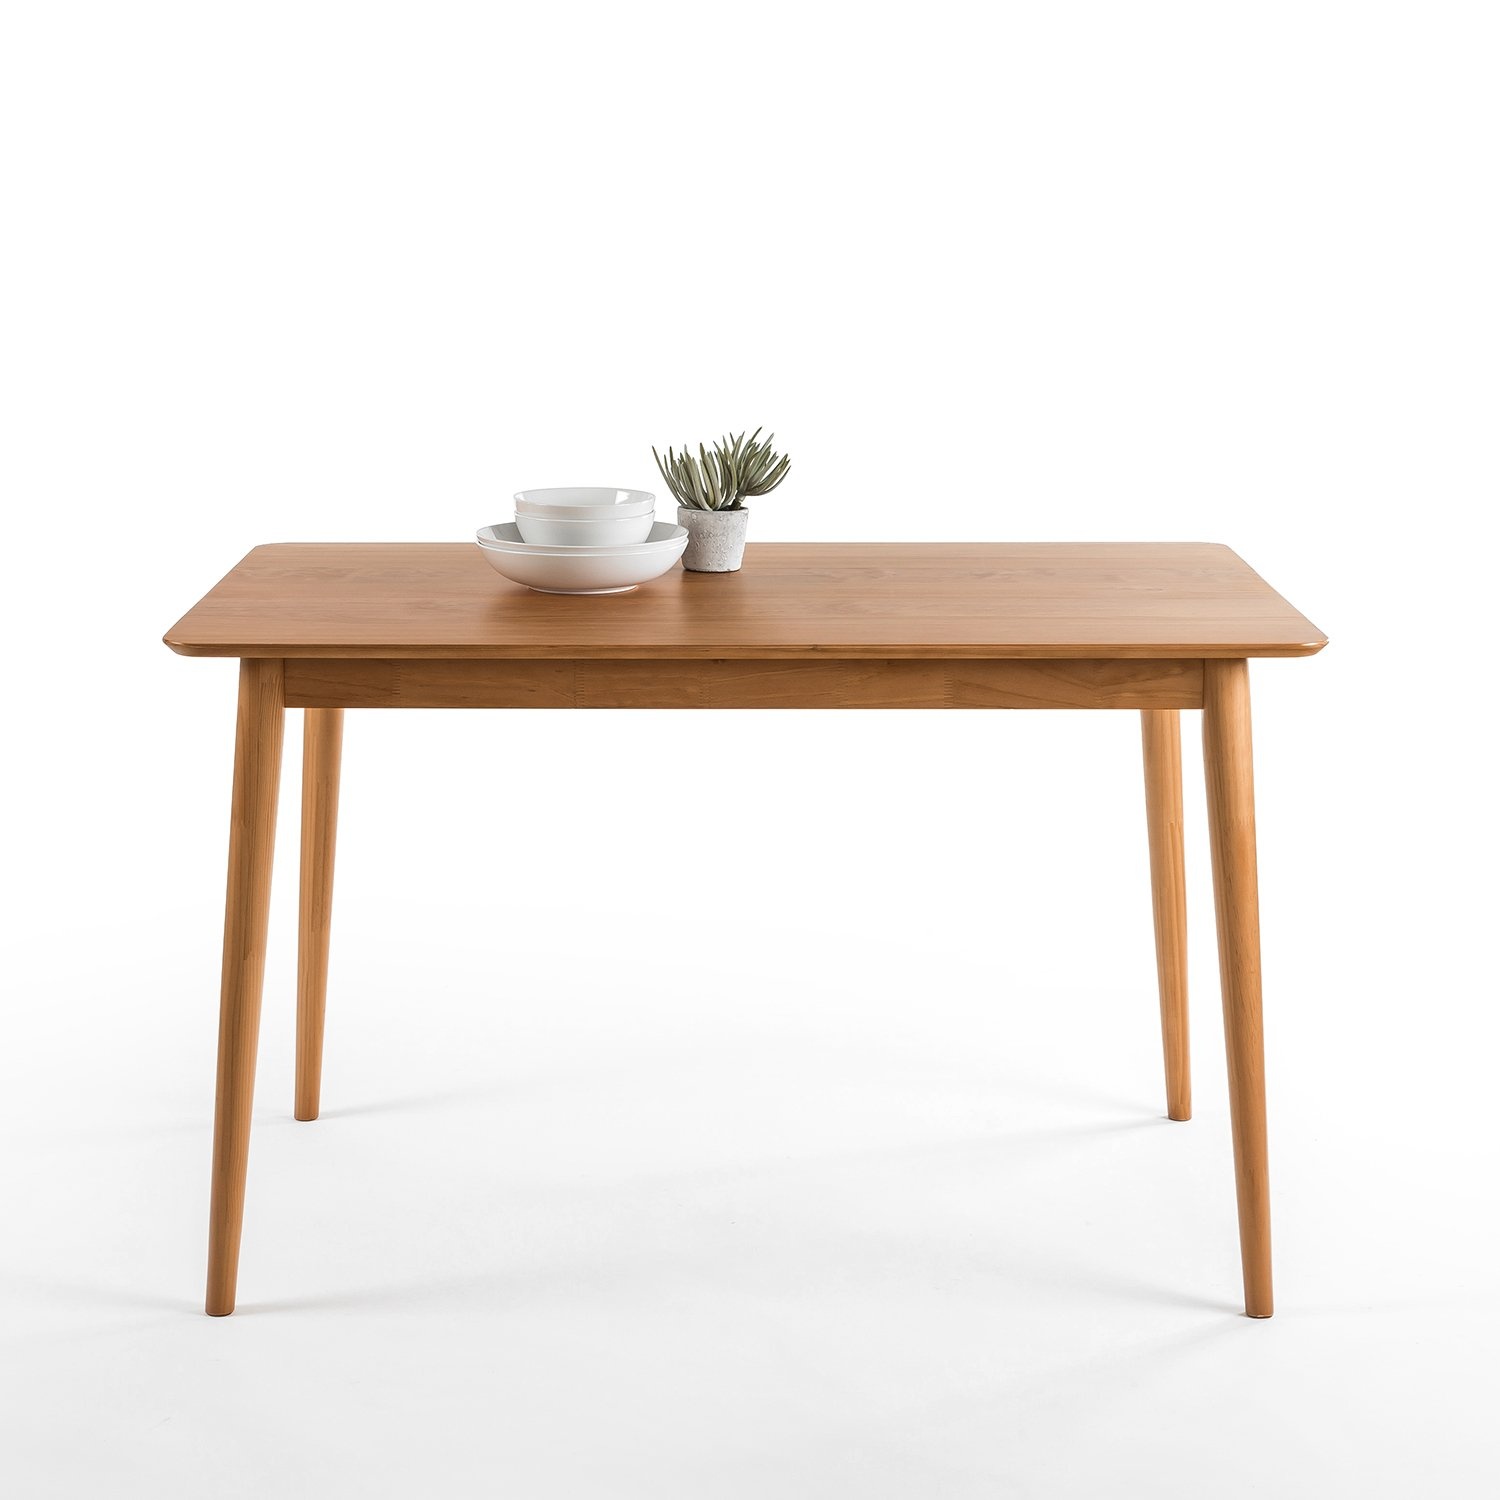 Zinus Jen Mid-Century Modern Wood Dining Table / Natural by Zinus